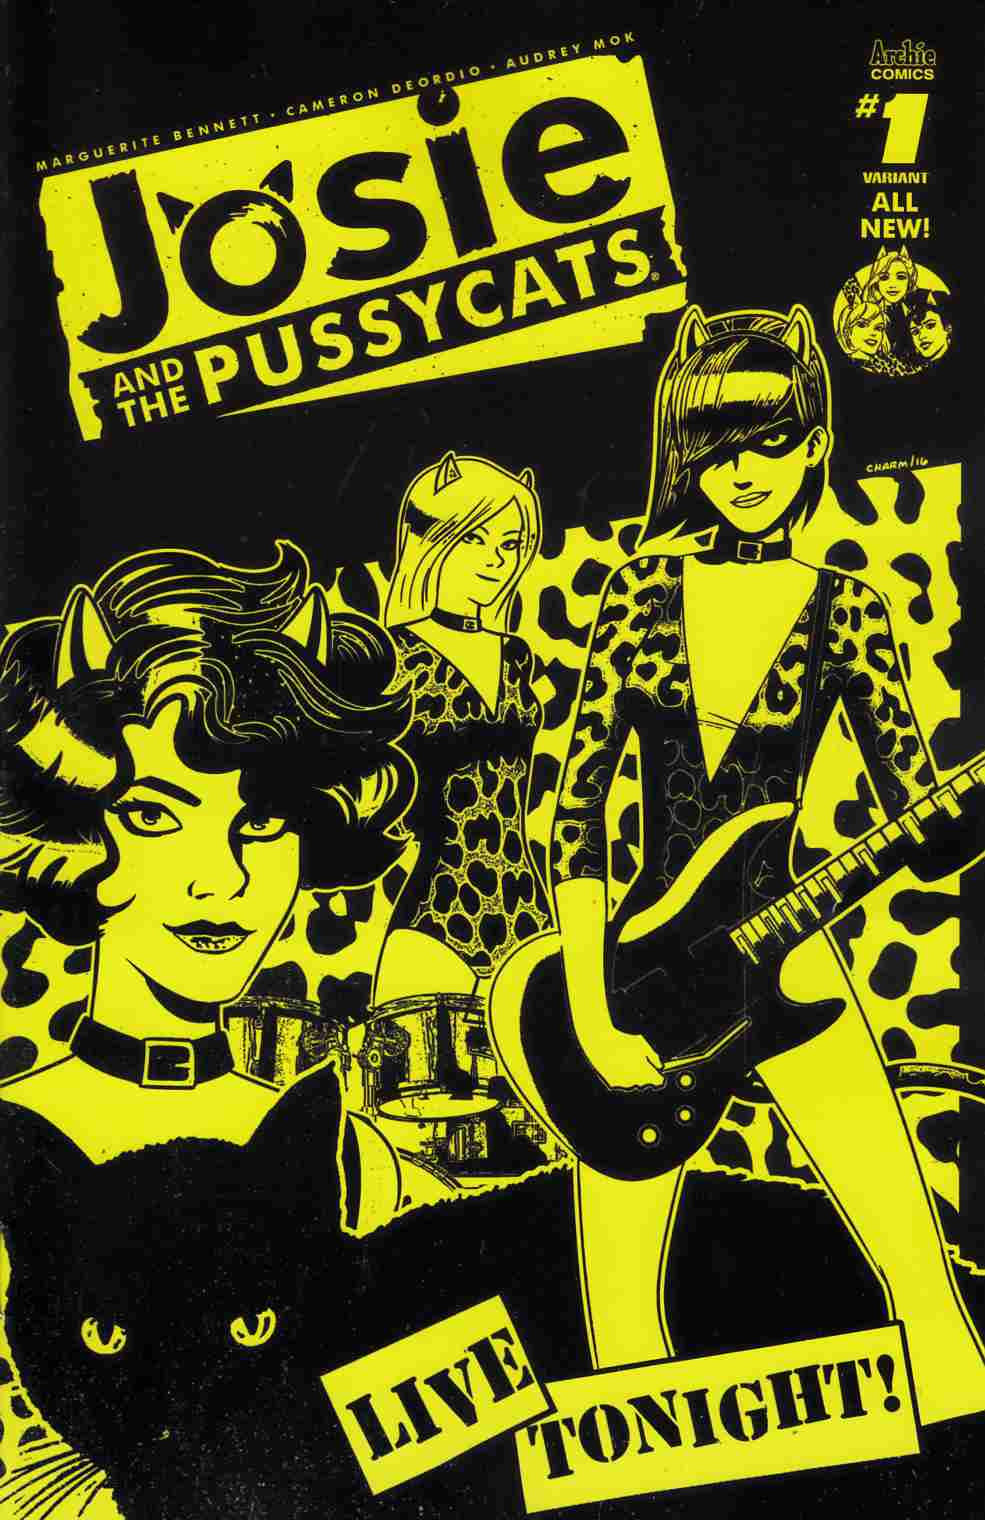 Josie & the Pussycats #1 Cover B [Archie Comic]